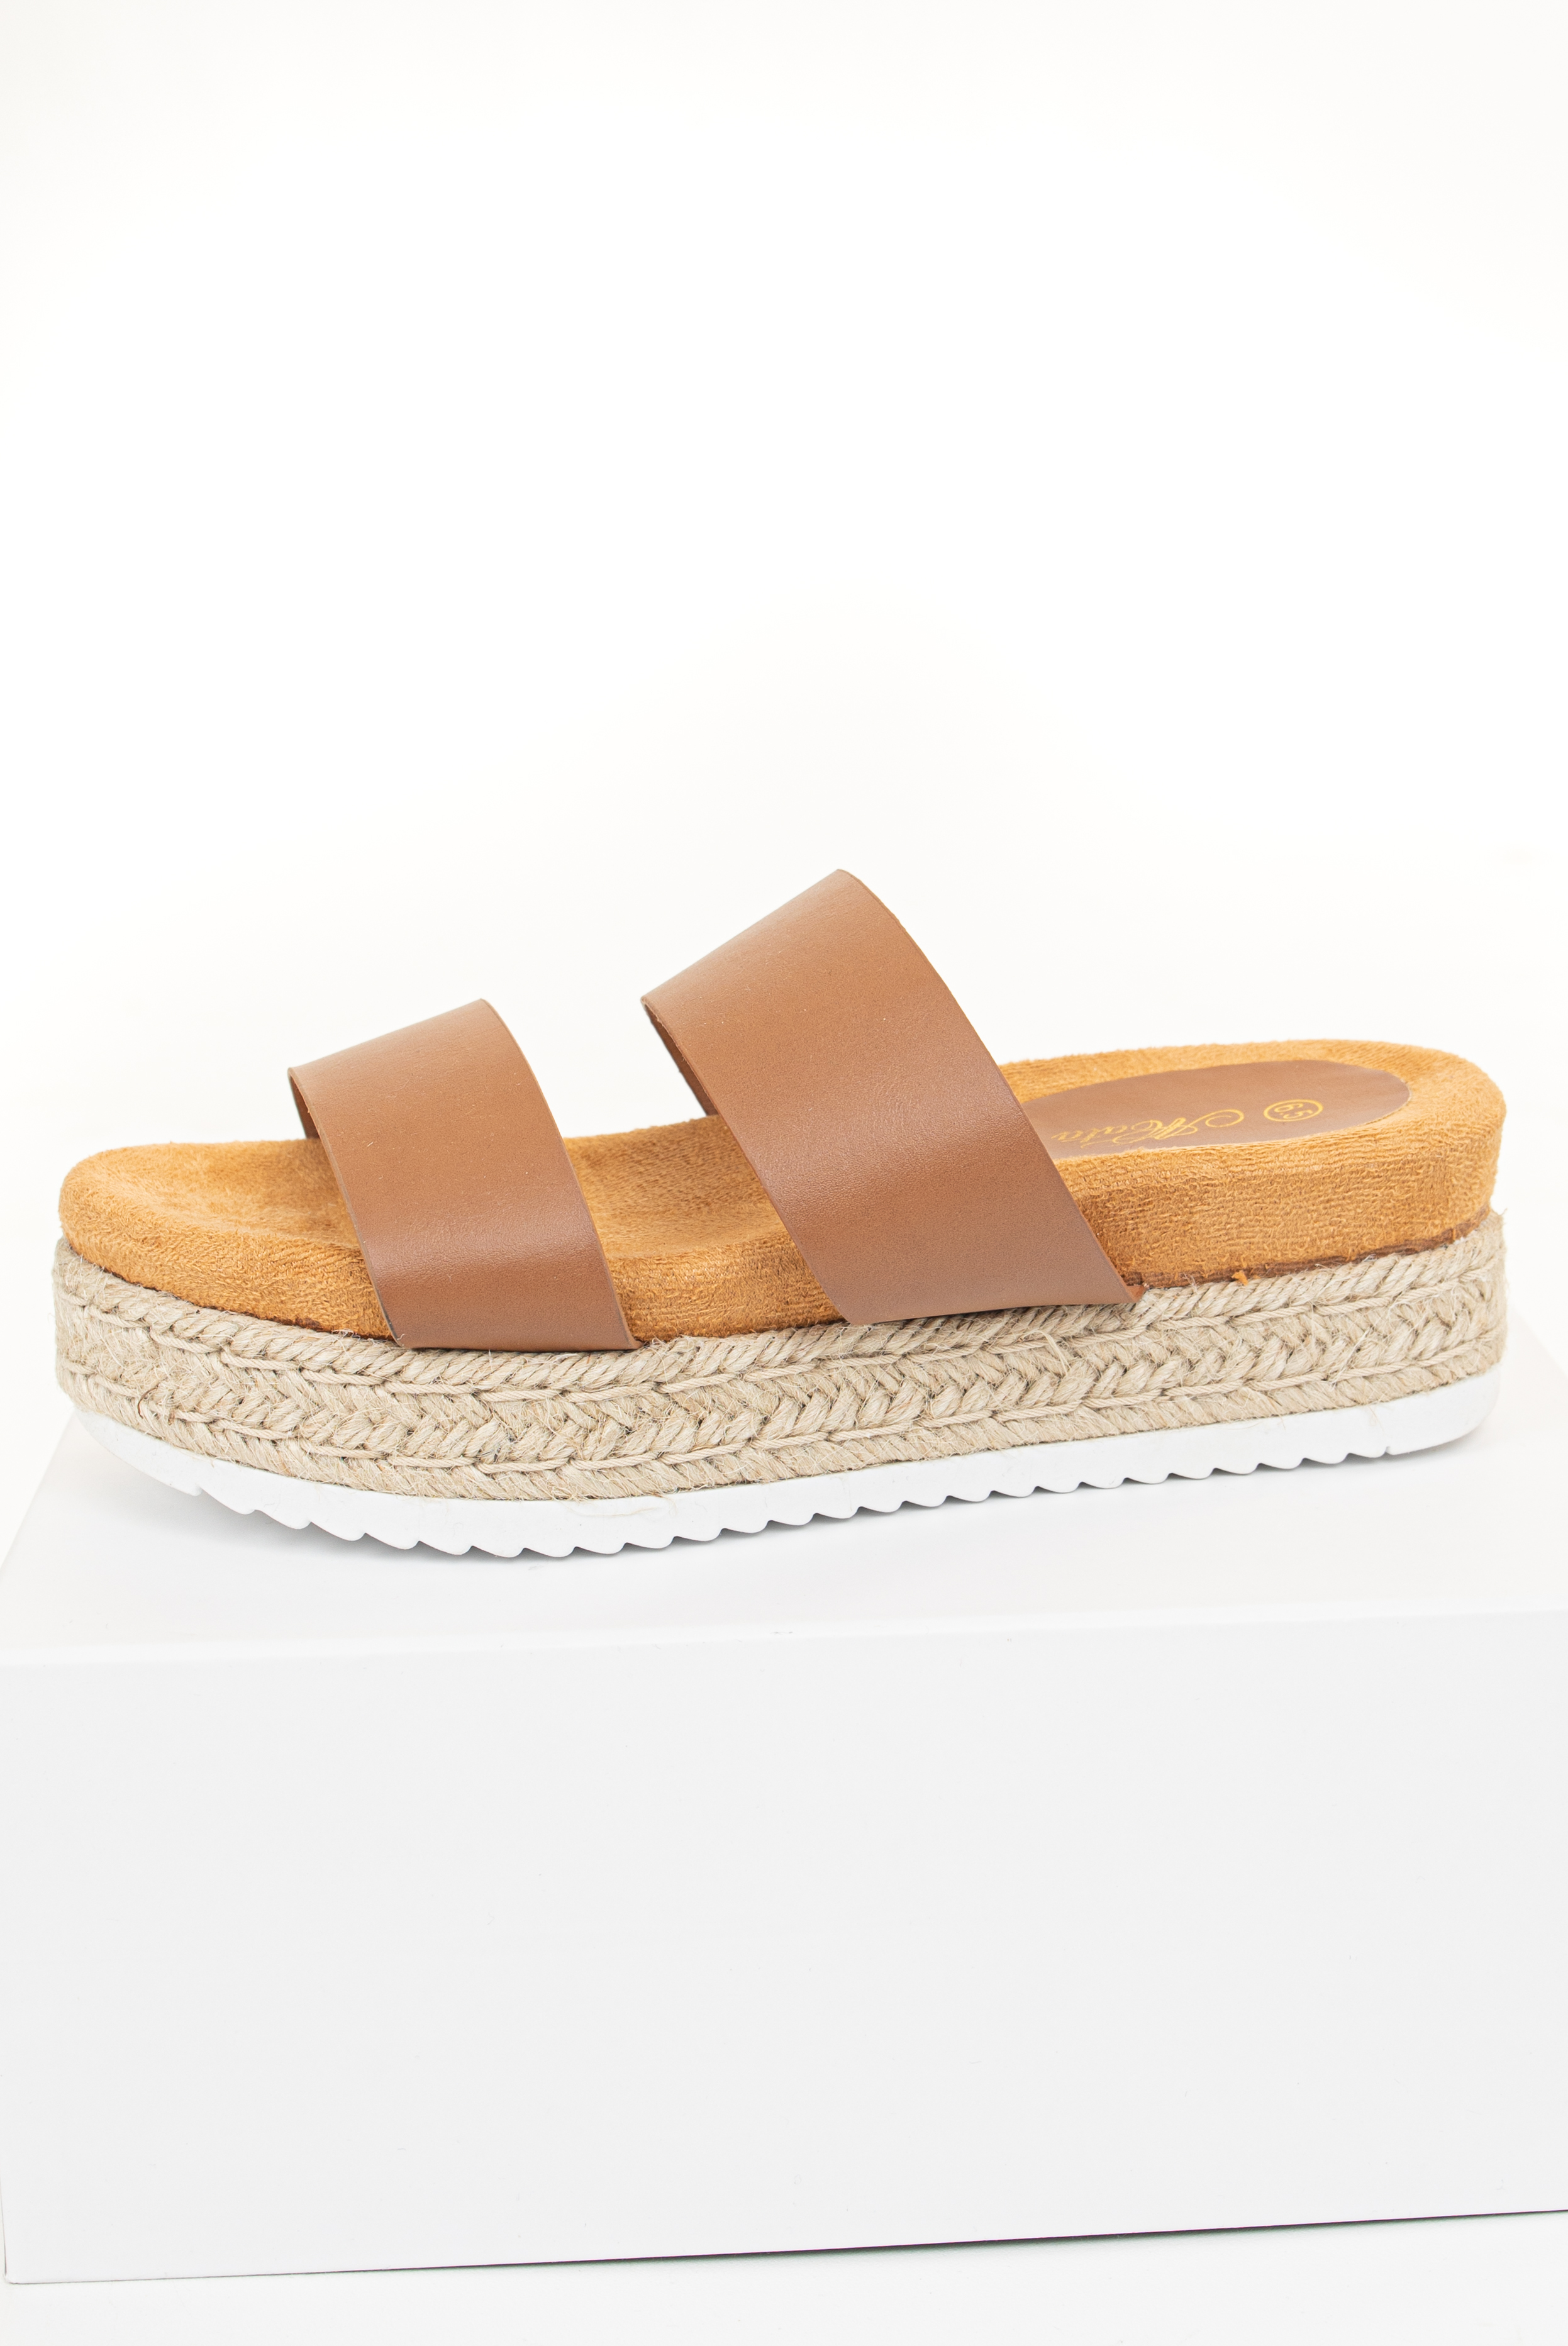 Cognac and Camel Slip On Espadrille Sandal with White Sole